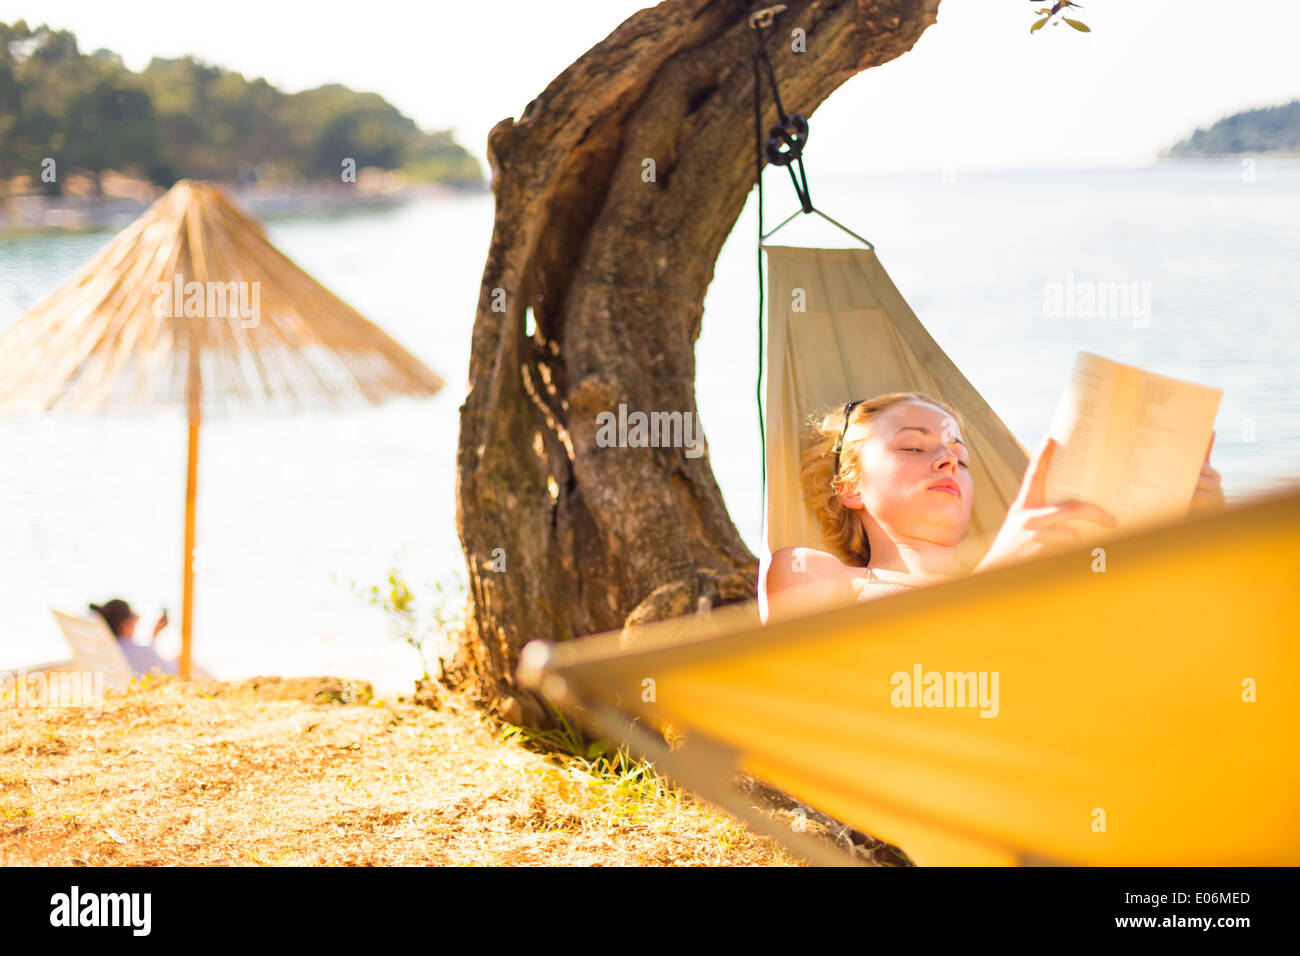 Lady reading book in hammock. - Stock Image